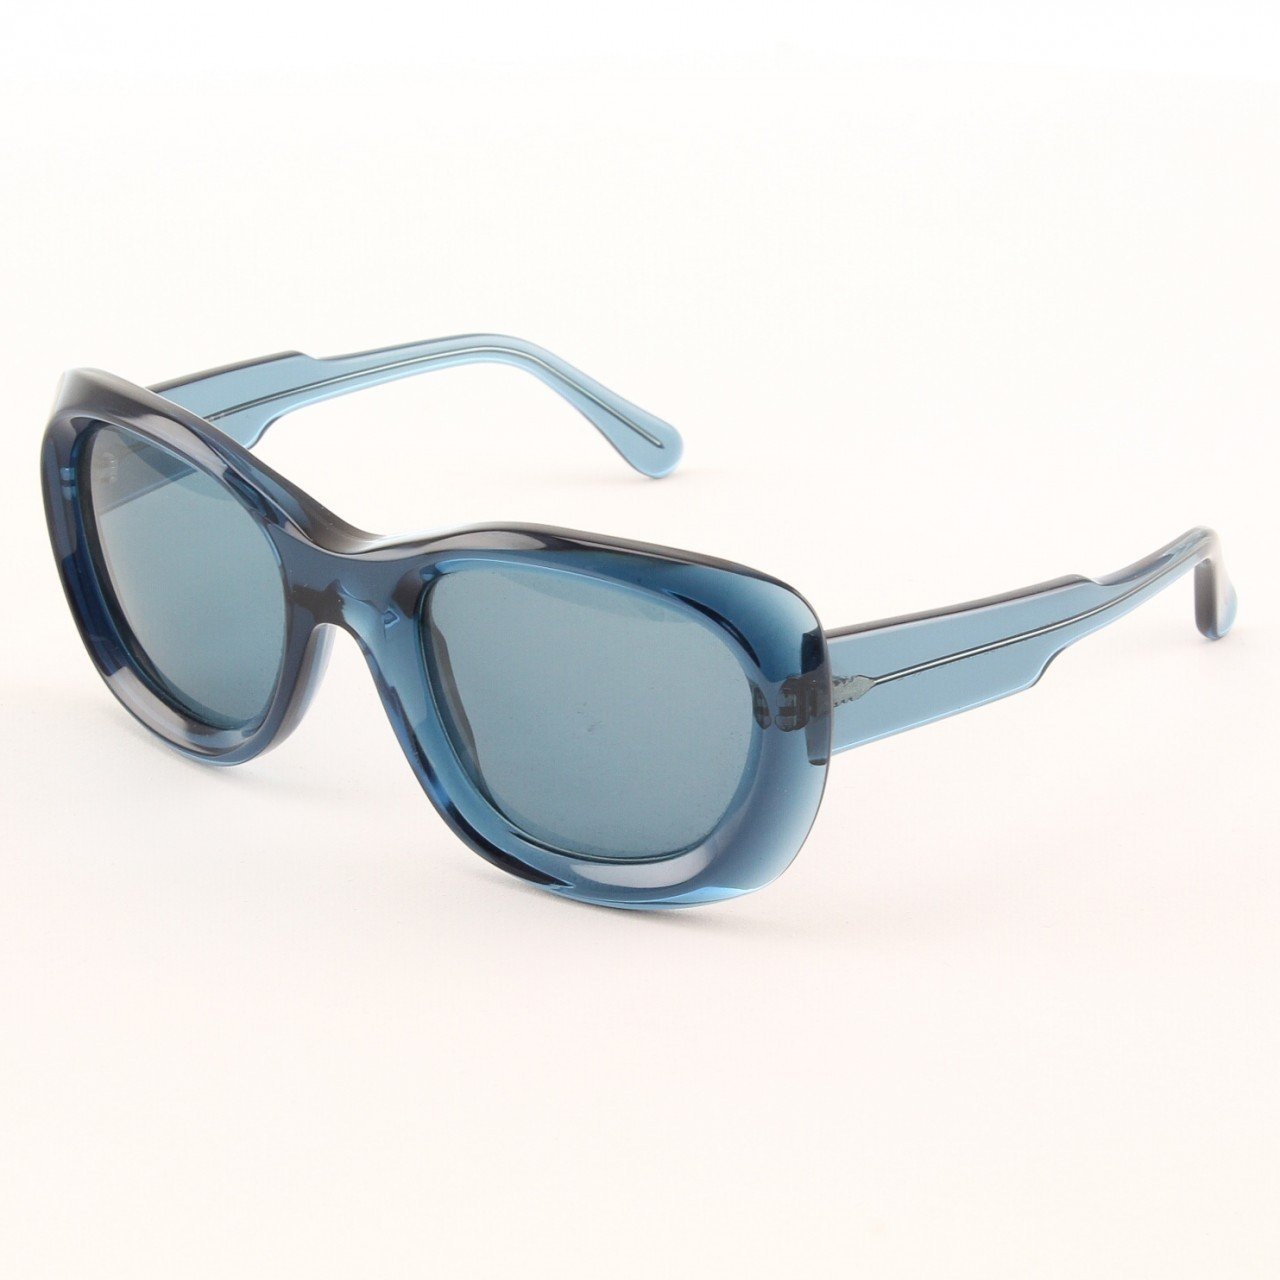 Marni MA178S Sunglasses Col. 07 Translucent Navy Blue with Gray Gradient Lenses